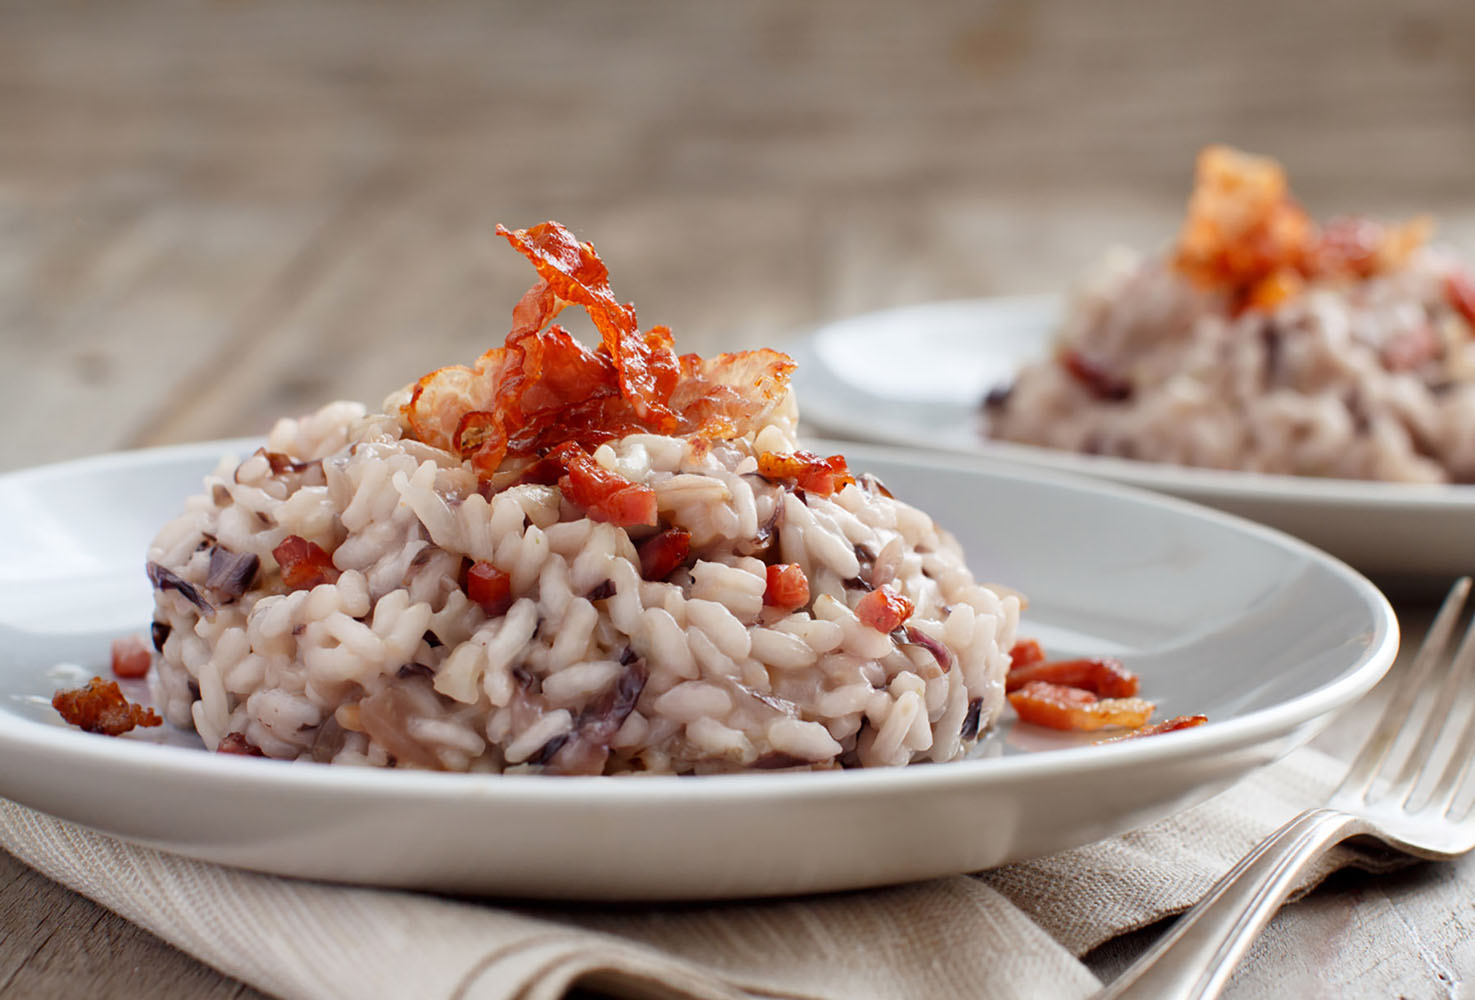 Risotto with red radicchio and crispy bacon